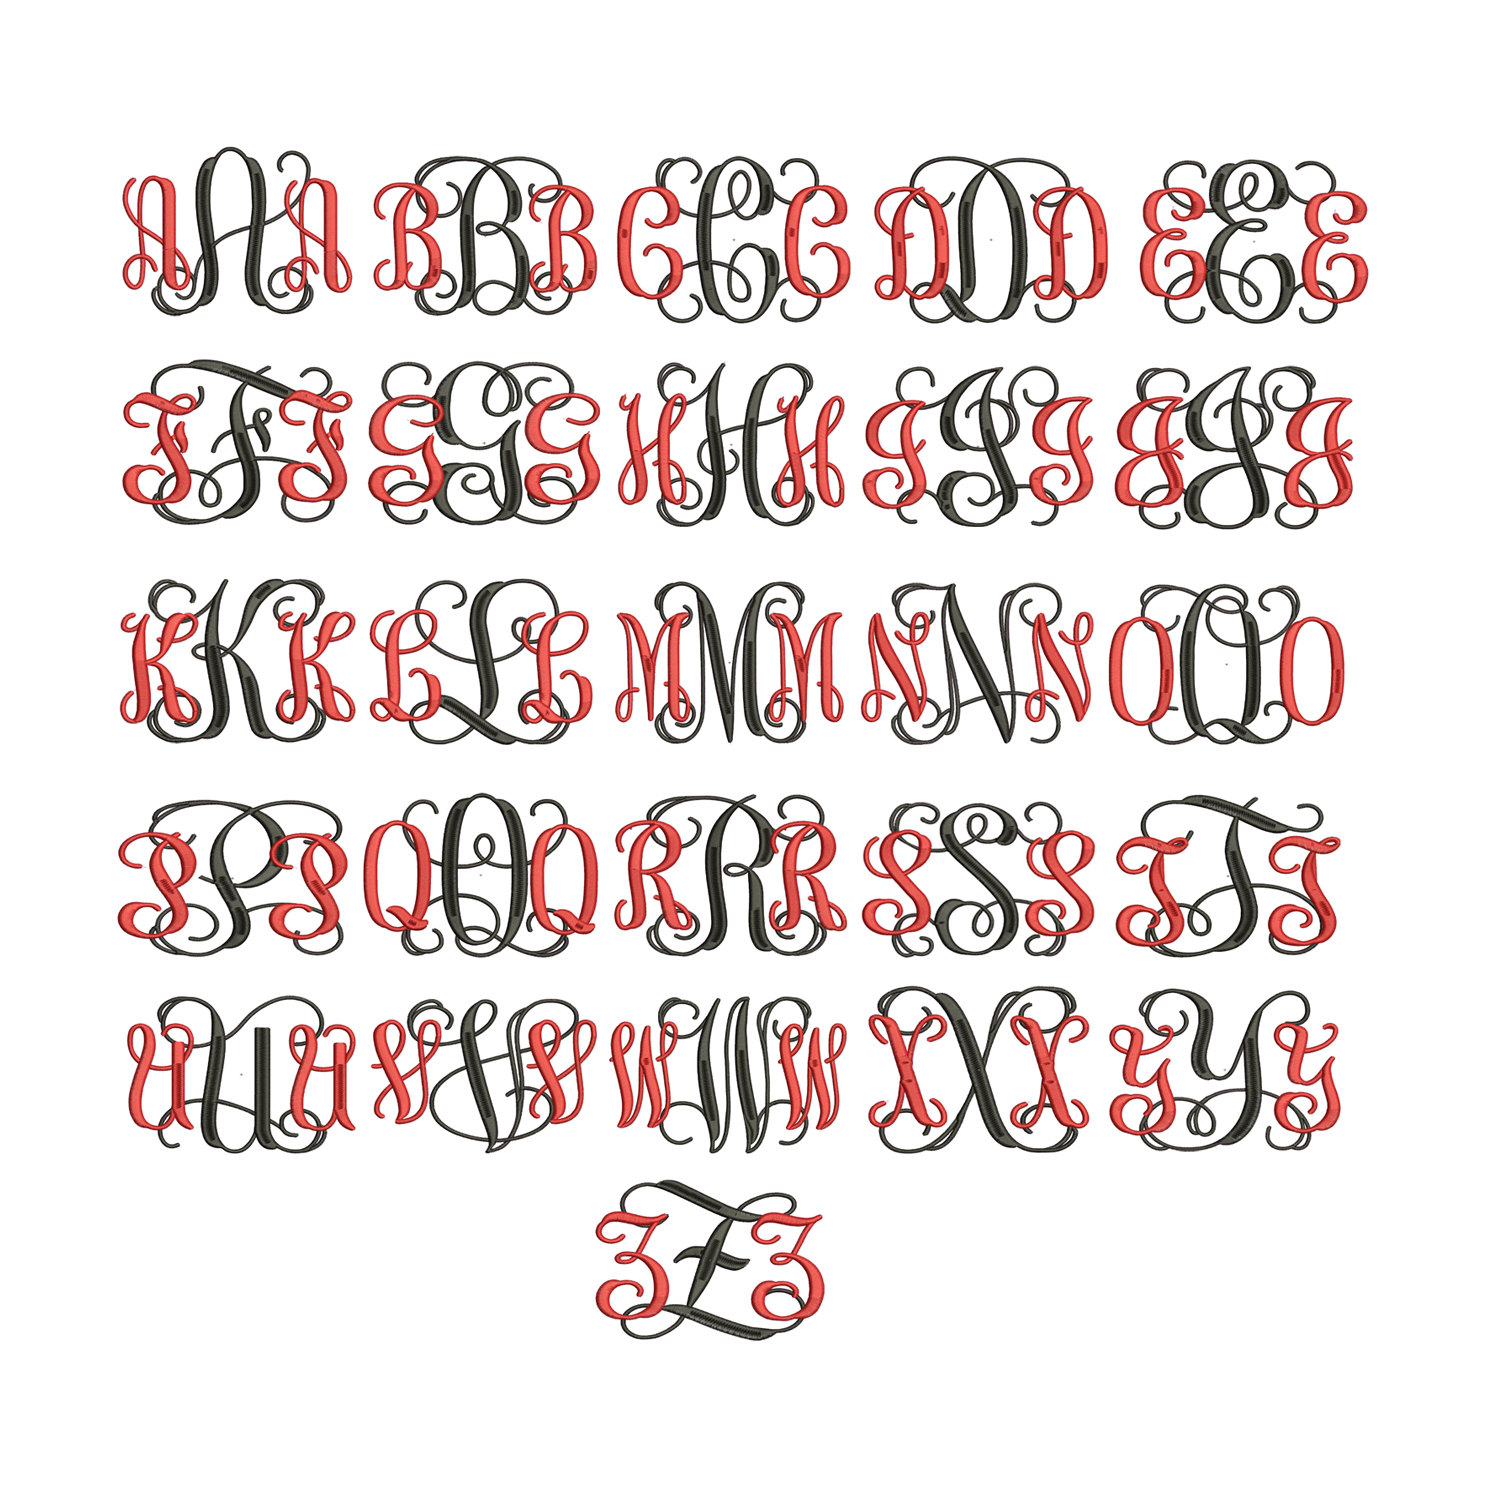 18 interlocking embroidery font images